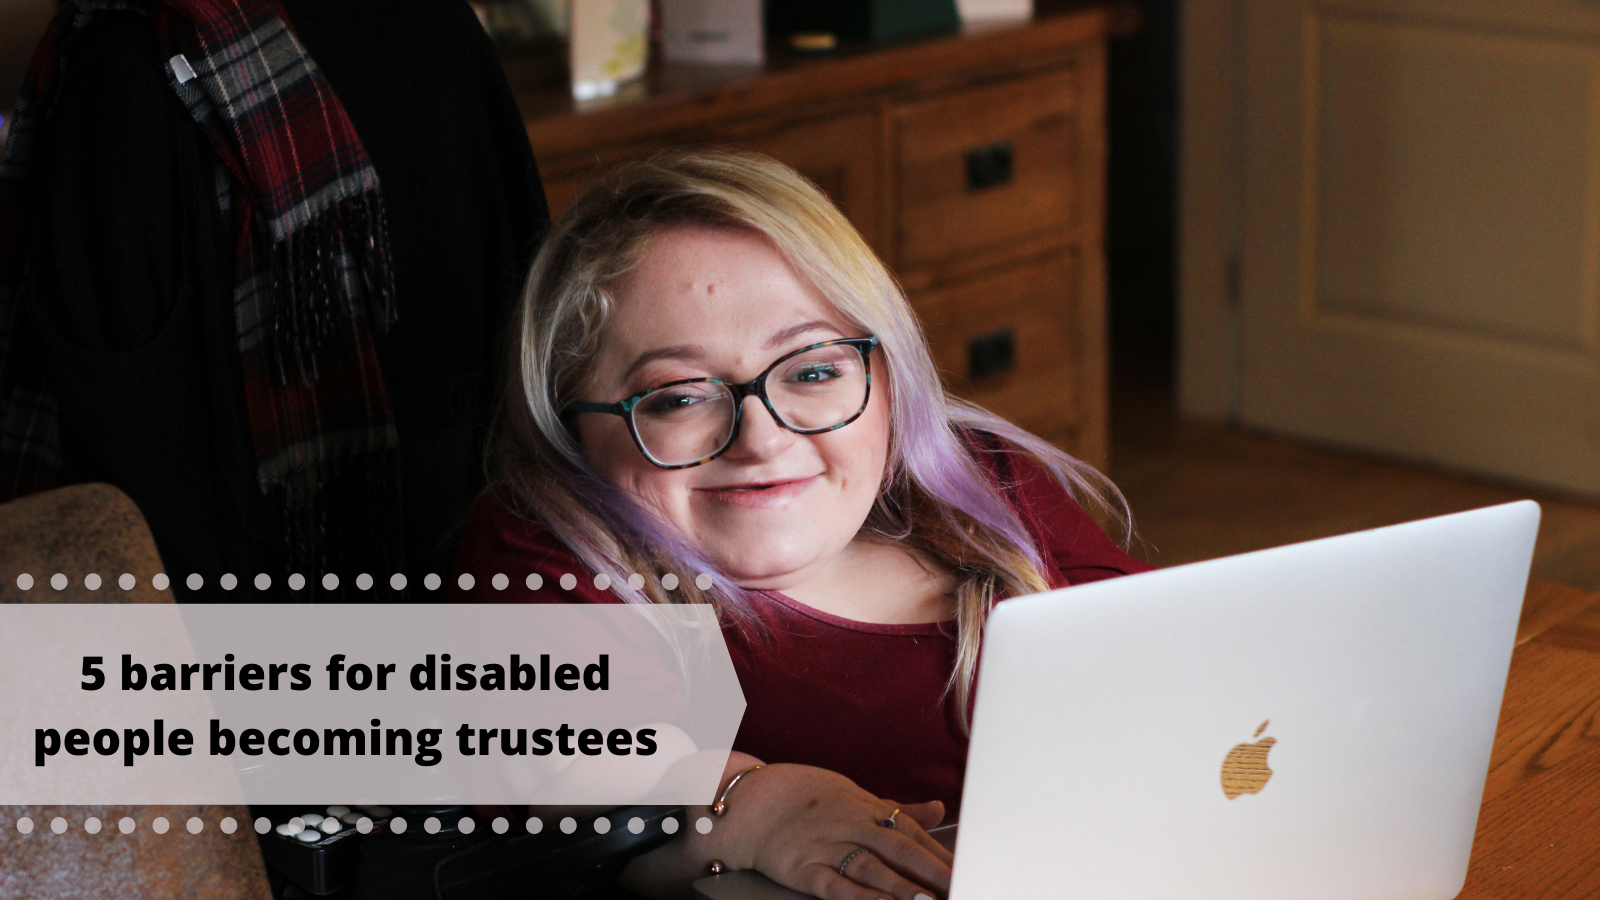 5 barriers for disabled people becoming trustees